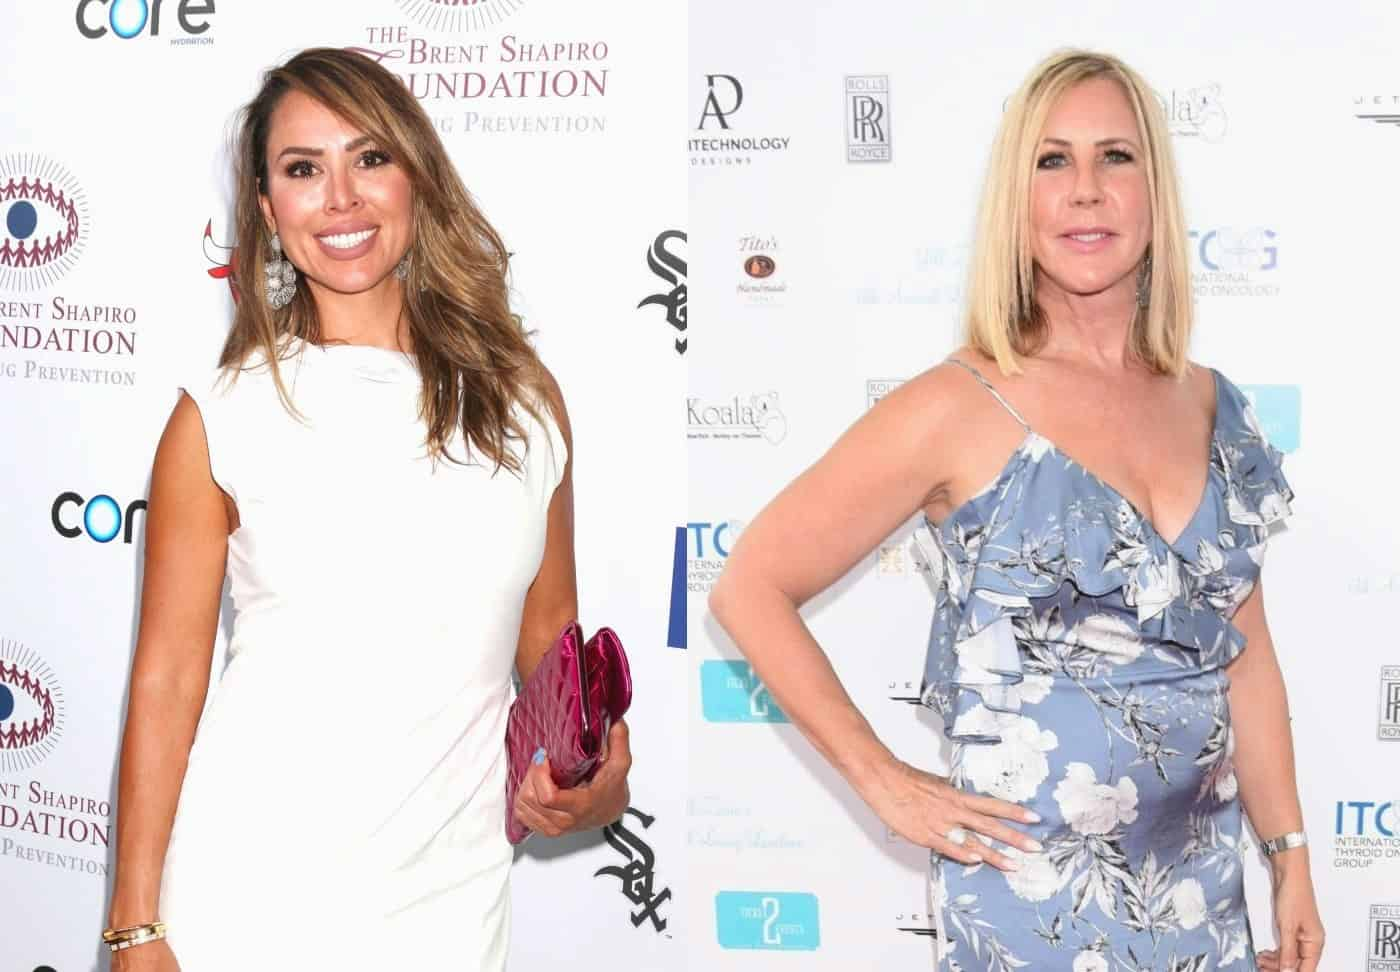 RHOC Kelly Dodd vs Vicki Gunvalson Feud on Social Media